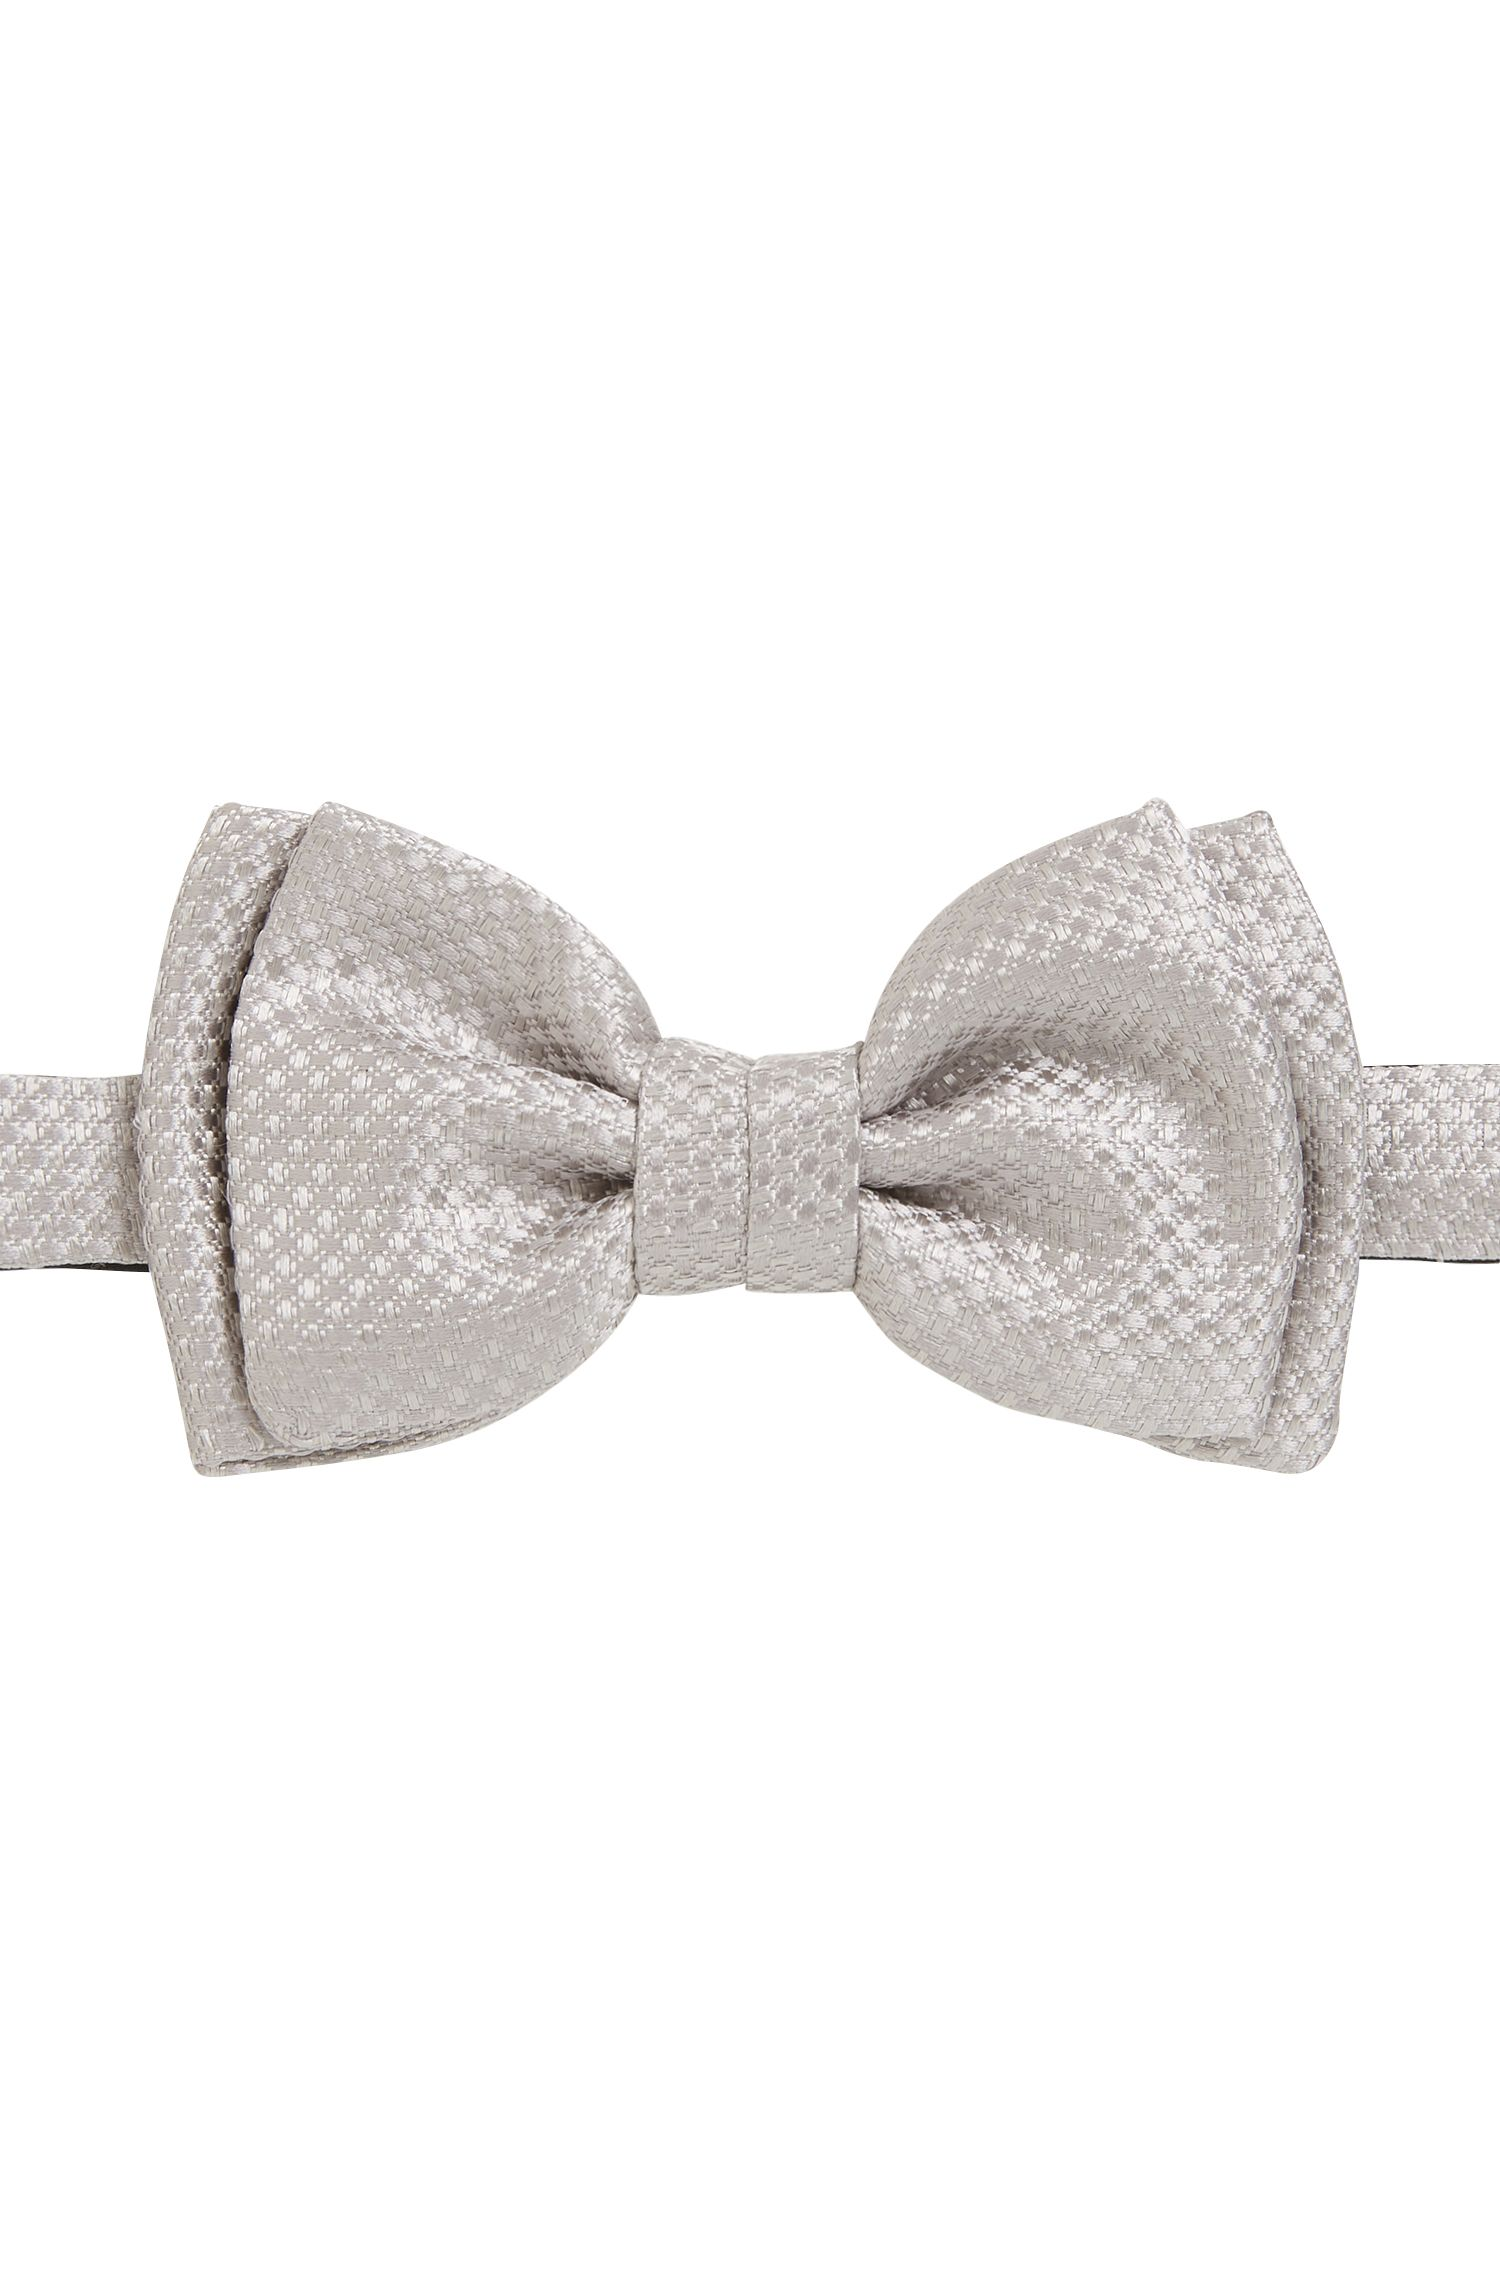 Italian-made bow tie in textured silk jacquard